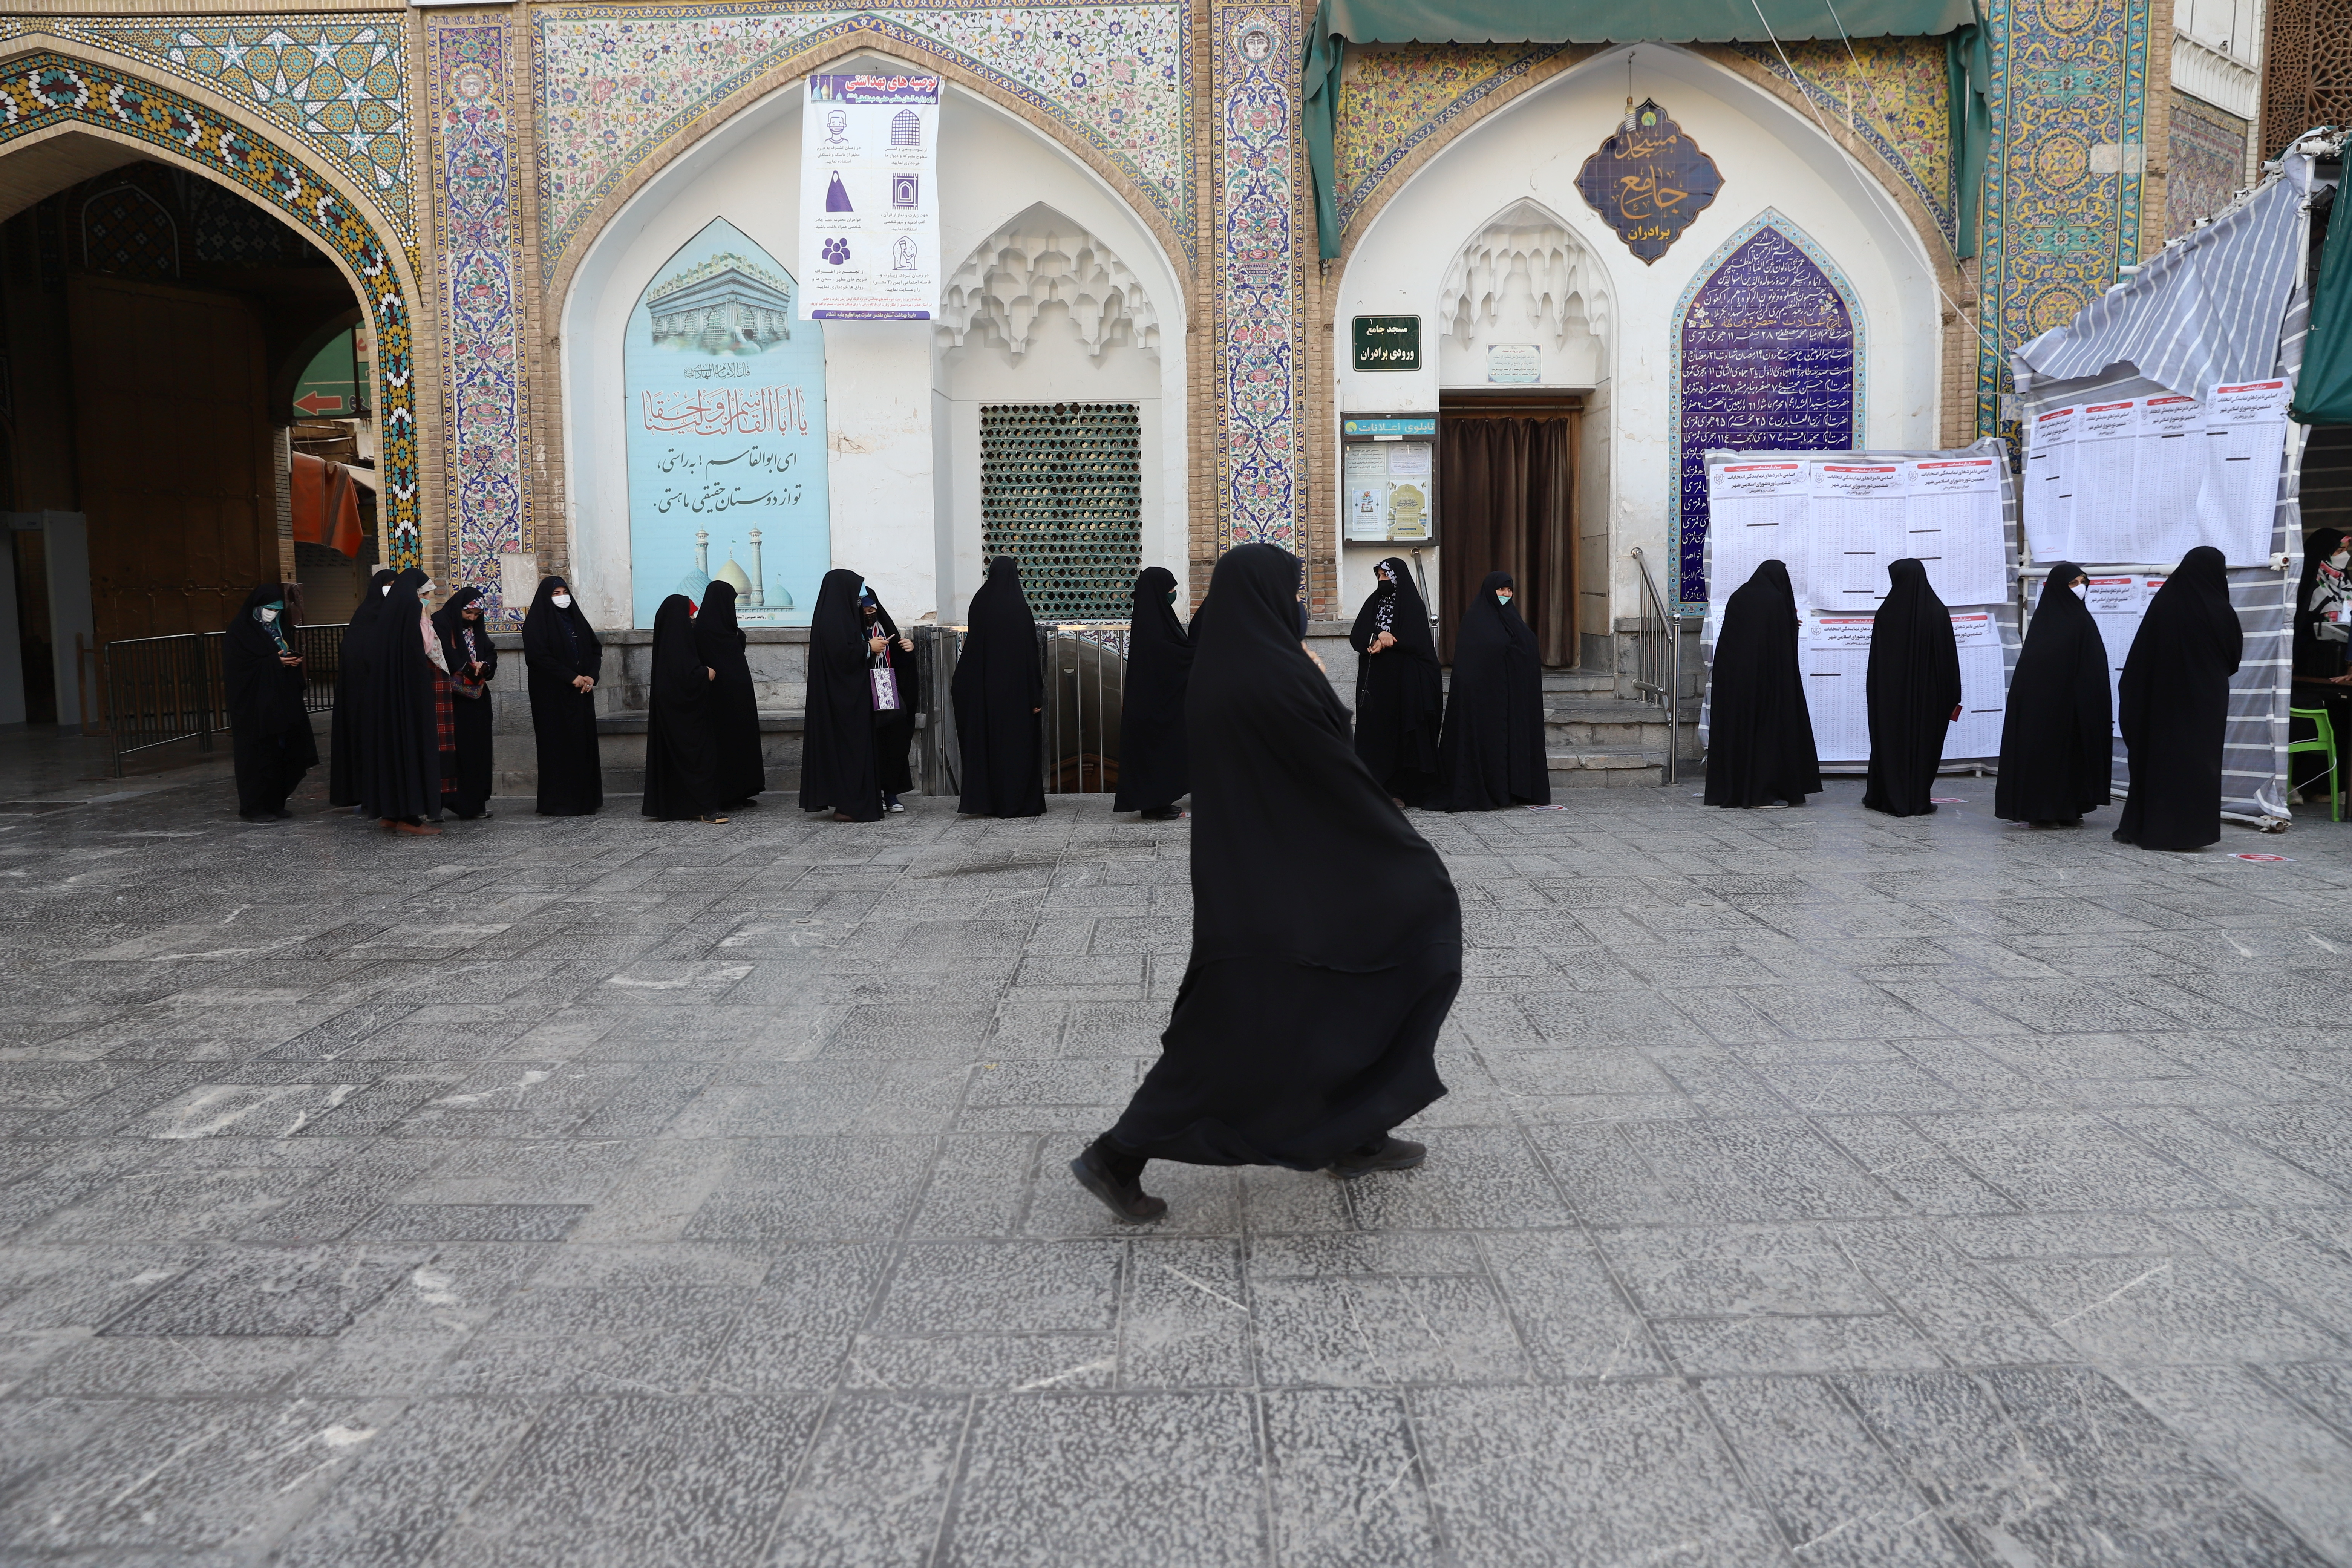 Iranians wait in line to vote at a polling station during presidential elections in Tehran, Iran June 18, 2021. Majid Asgaripour/WANA (West Asia News Agency) via REUTERS ATTENTION EDITORS - THIS IMAGE HAS BEEN SUPPLIED BY A THIRD PARTY.